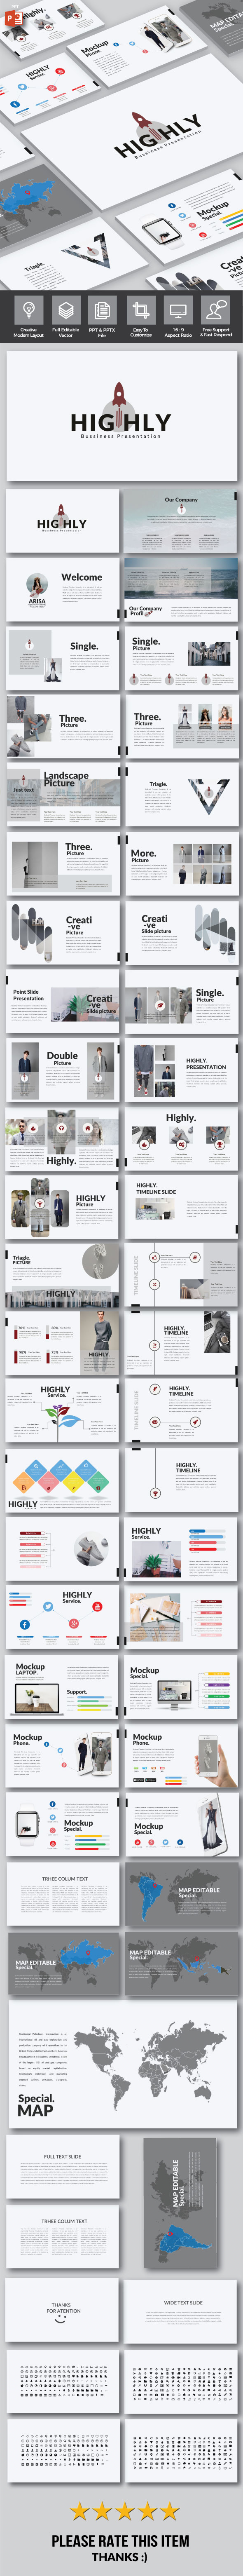 Highly - Multipurpose Powerpoint - Business PowerPoint Templates